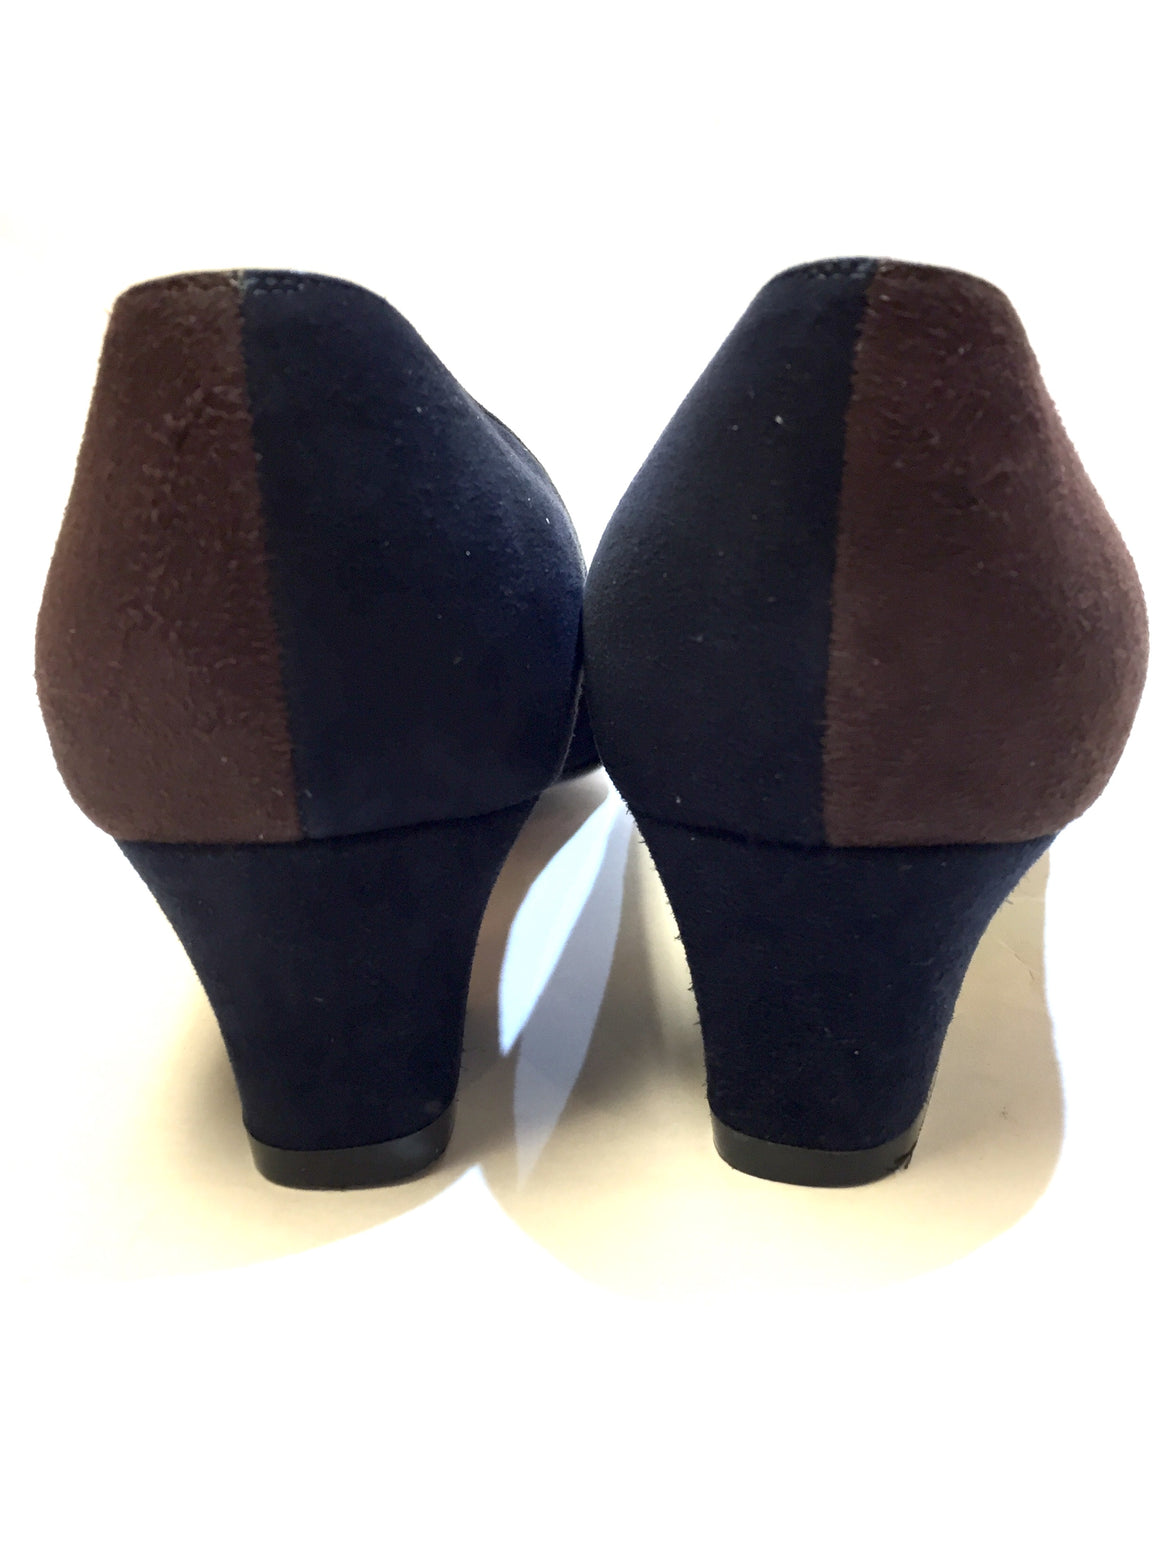 SILVIA FIORENTINA Brown/Navy-Blue Color Block Suede Low Heel Pumps Size: EU37 / US7